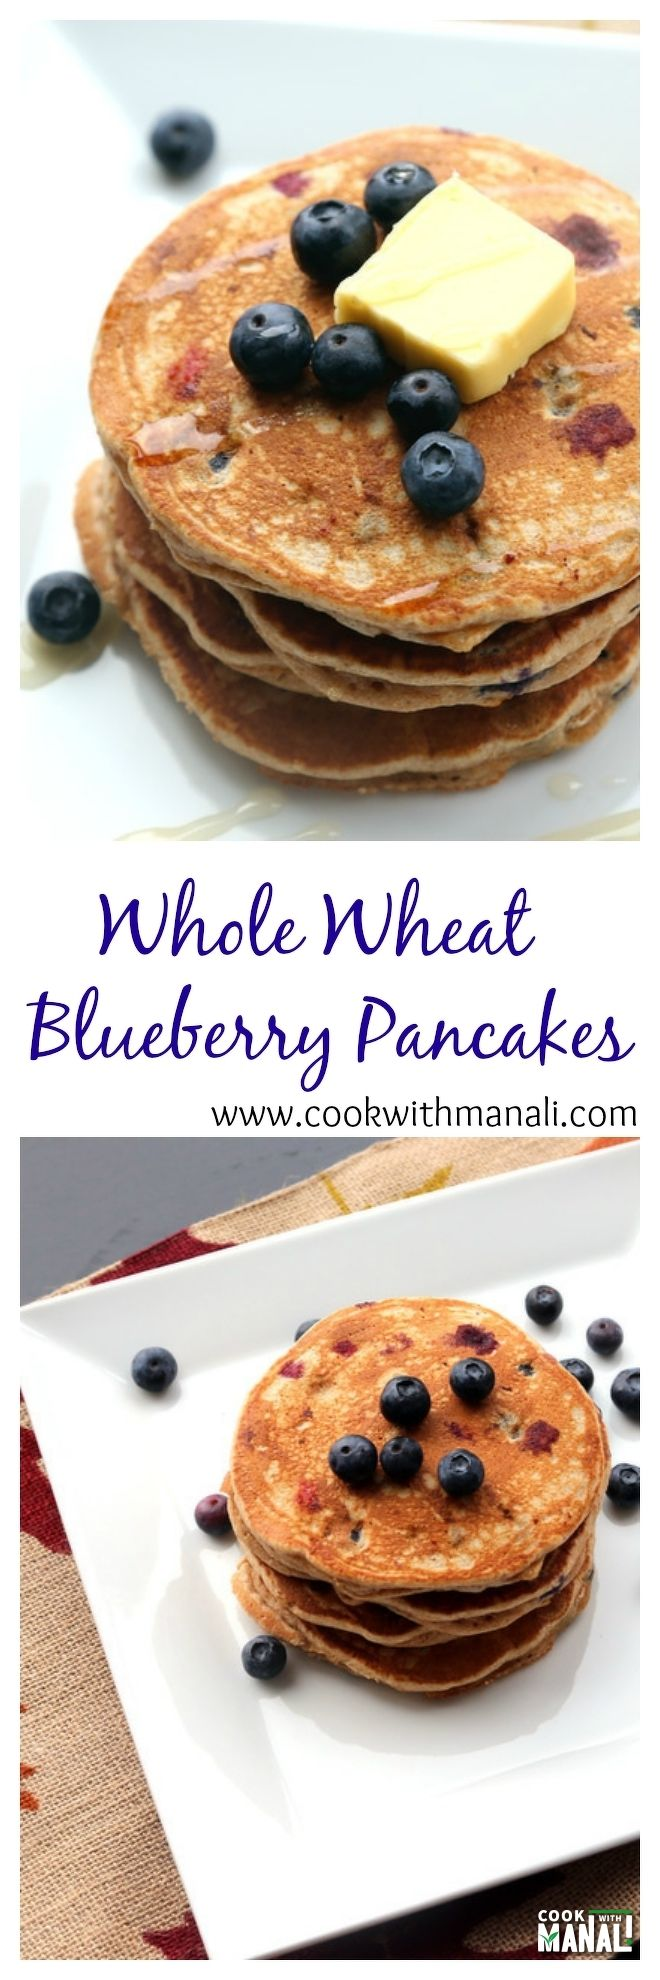 Whole-wheat-blueberry-pancakes-collage